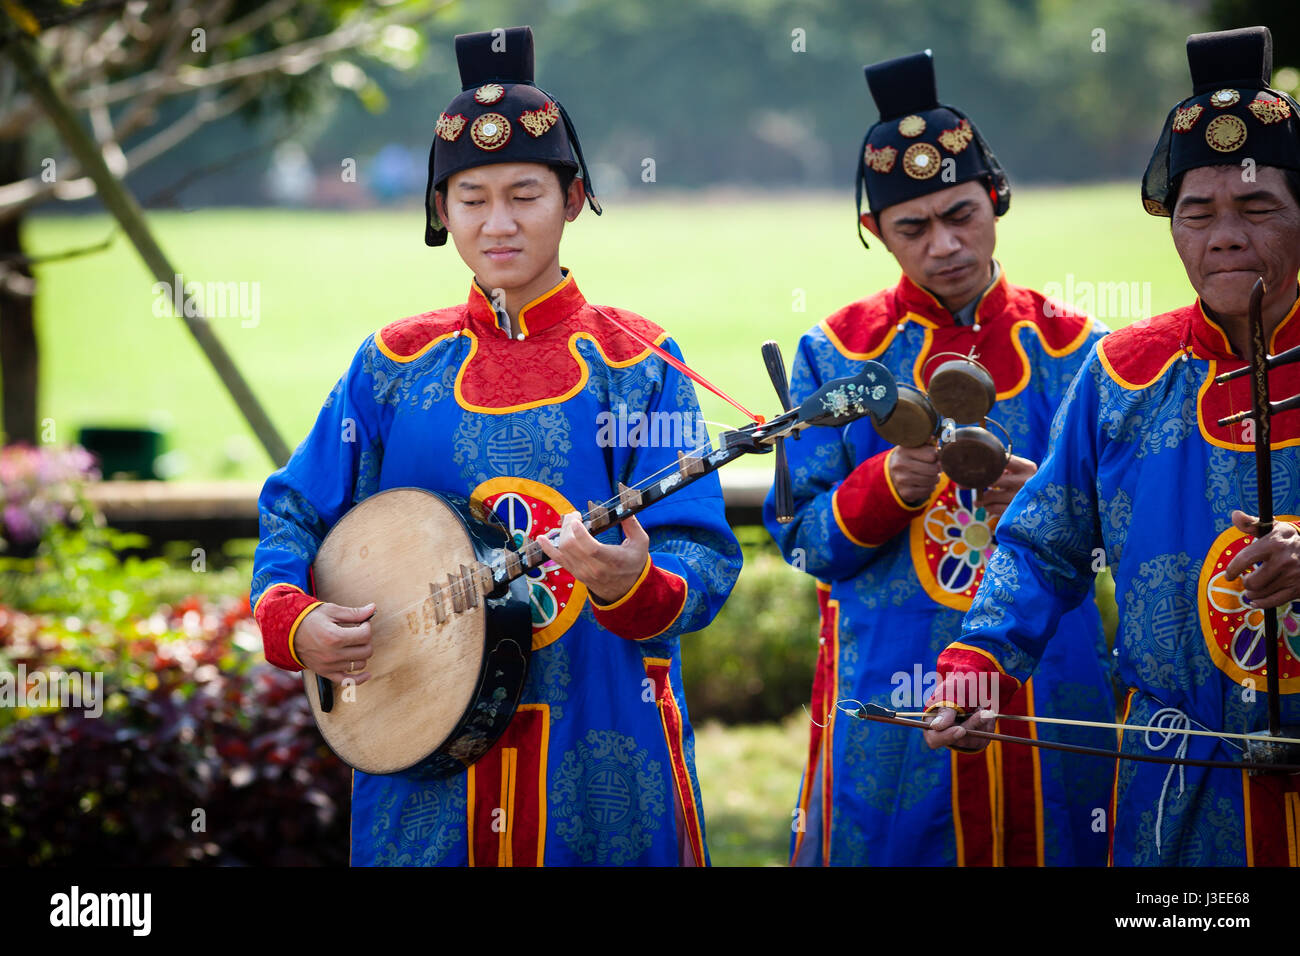 Hoi An, Vietnam - march 10 2017: vietnamese traditional music band is giving concert in Imperial Citadel. Musician - Stock Image